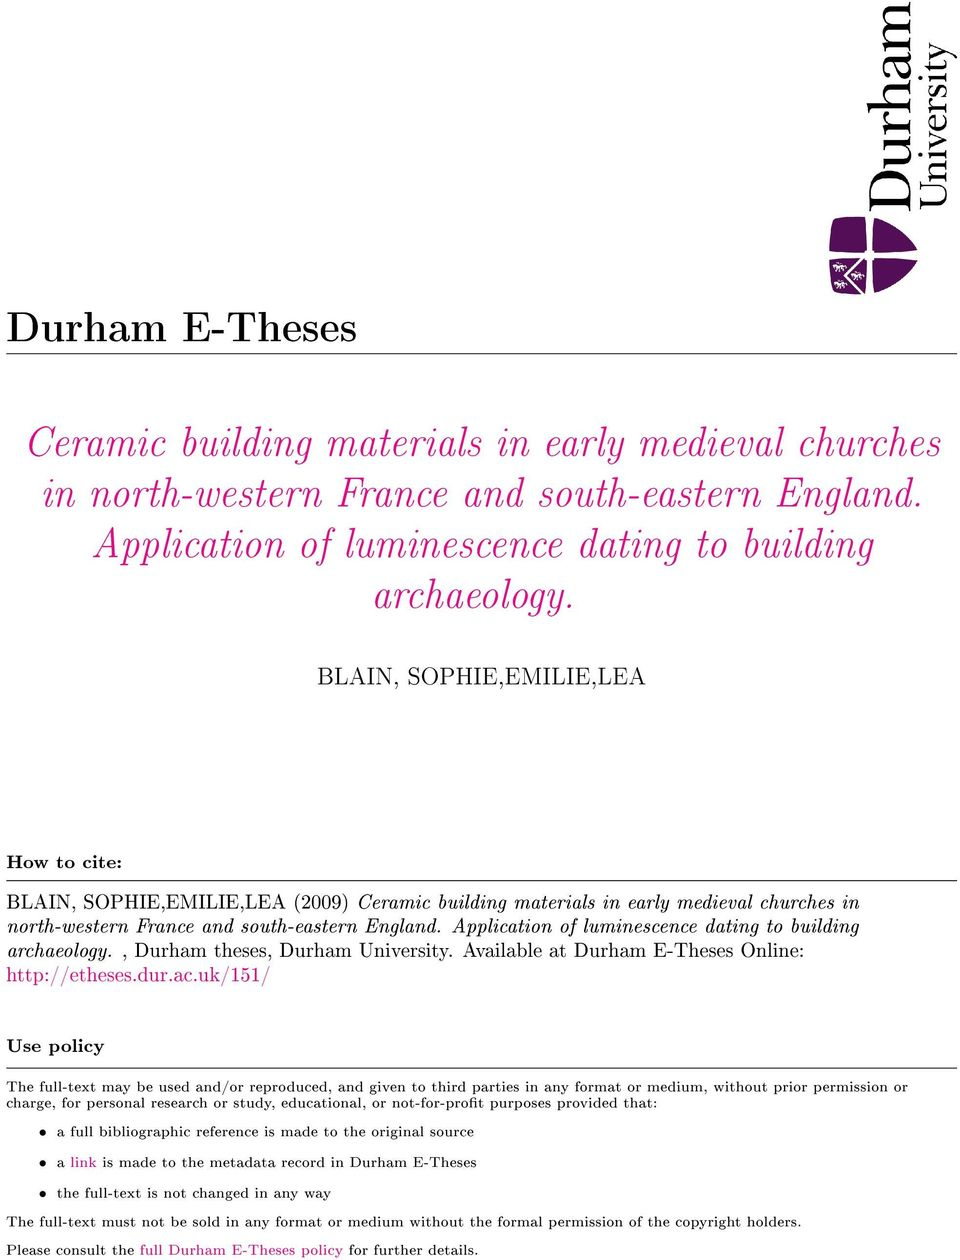 Application of luminescence dating to building archaeology., Durham theses, Durham University. Available at Durham E-Theses Online: http://etheses.dur.ac.